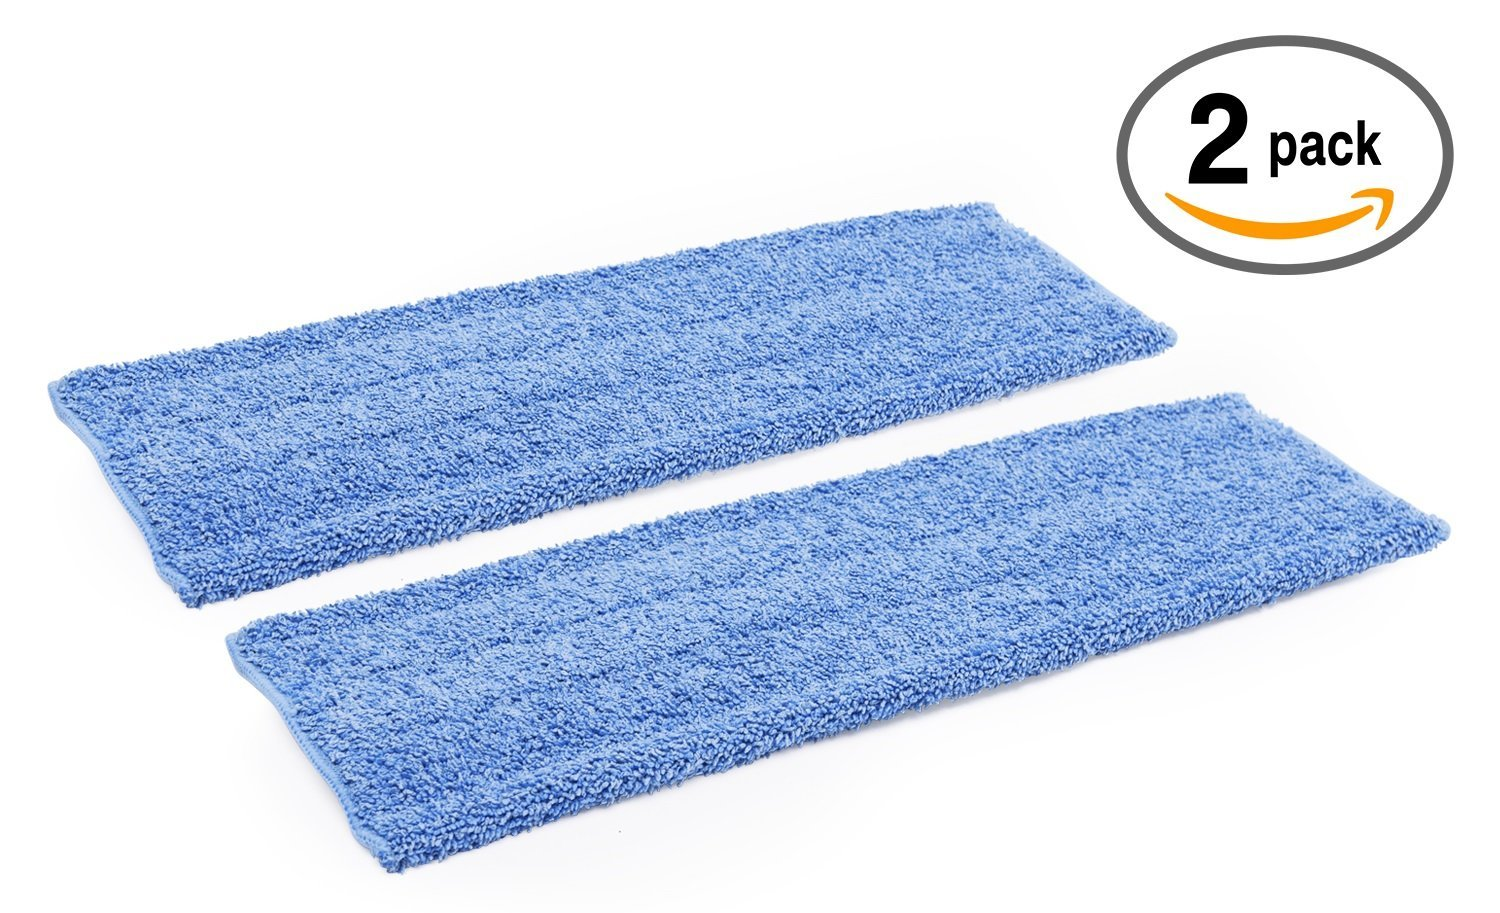 18'' Premium Microfiber Wet Mop Pad - 2 Pack | Use with our 18'' Professional Microfiber Mop by Microfiber Wholesale